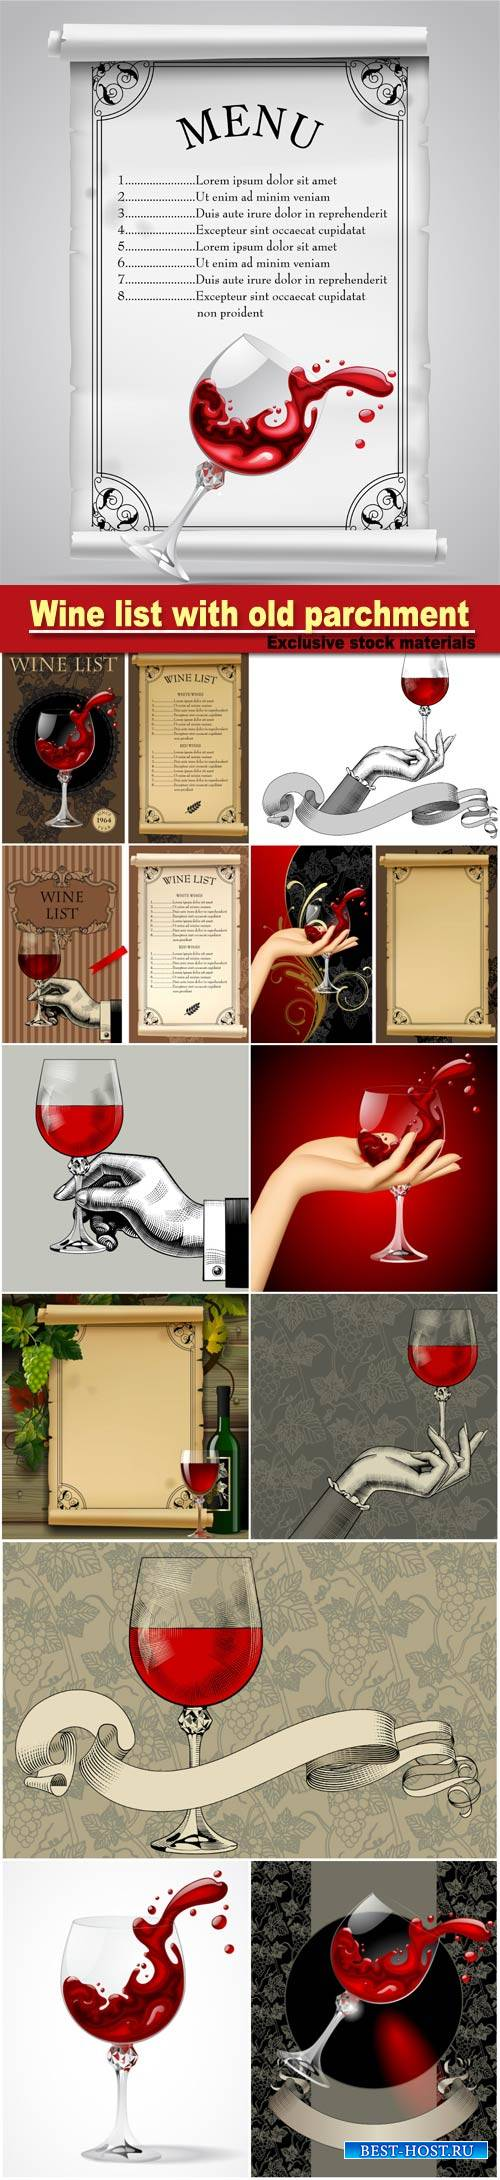 Wine list with old parchment, grapes, bottle and wineglass with splashed wi ...